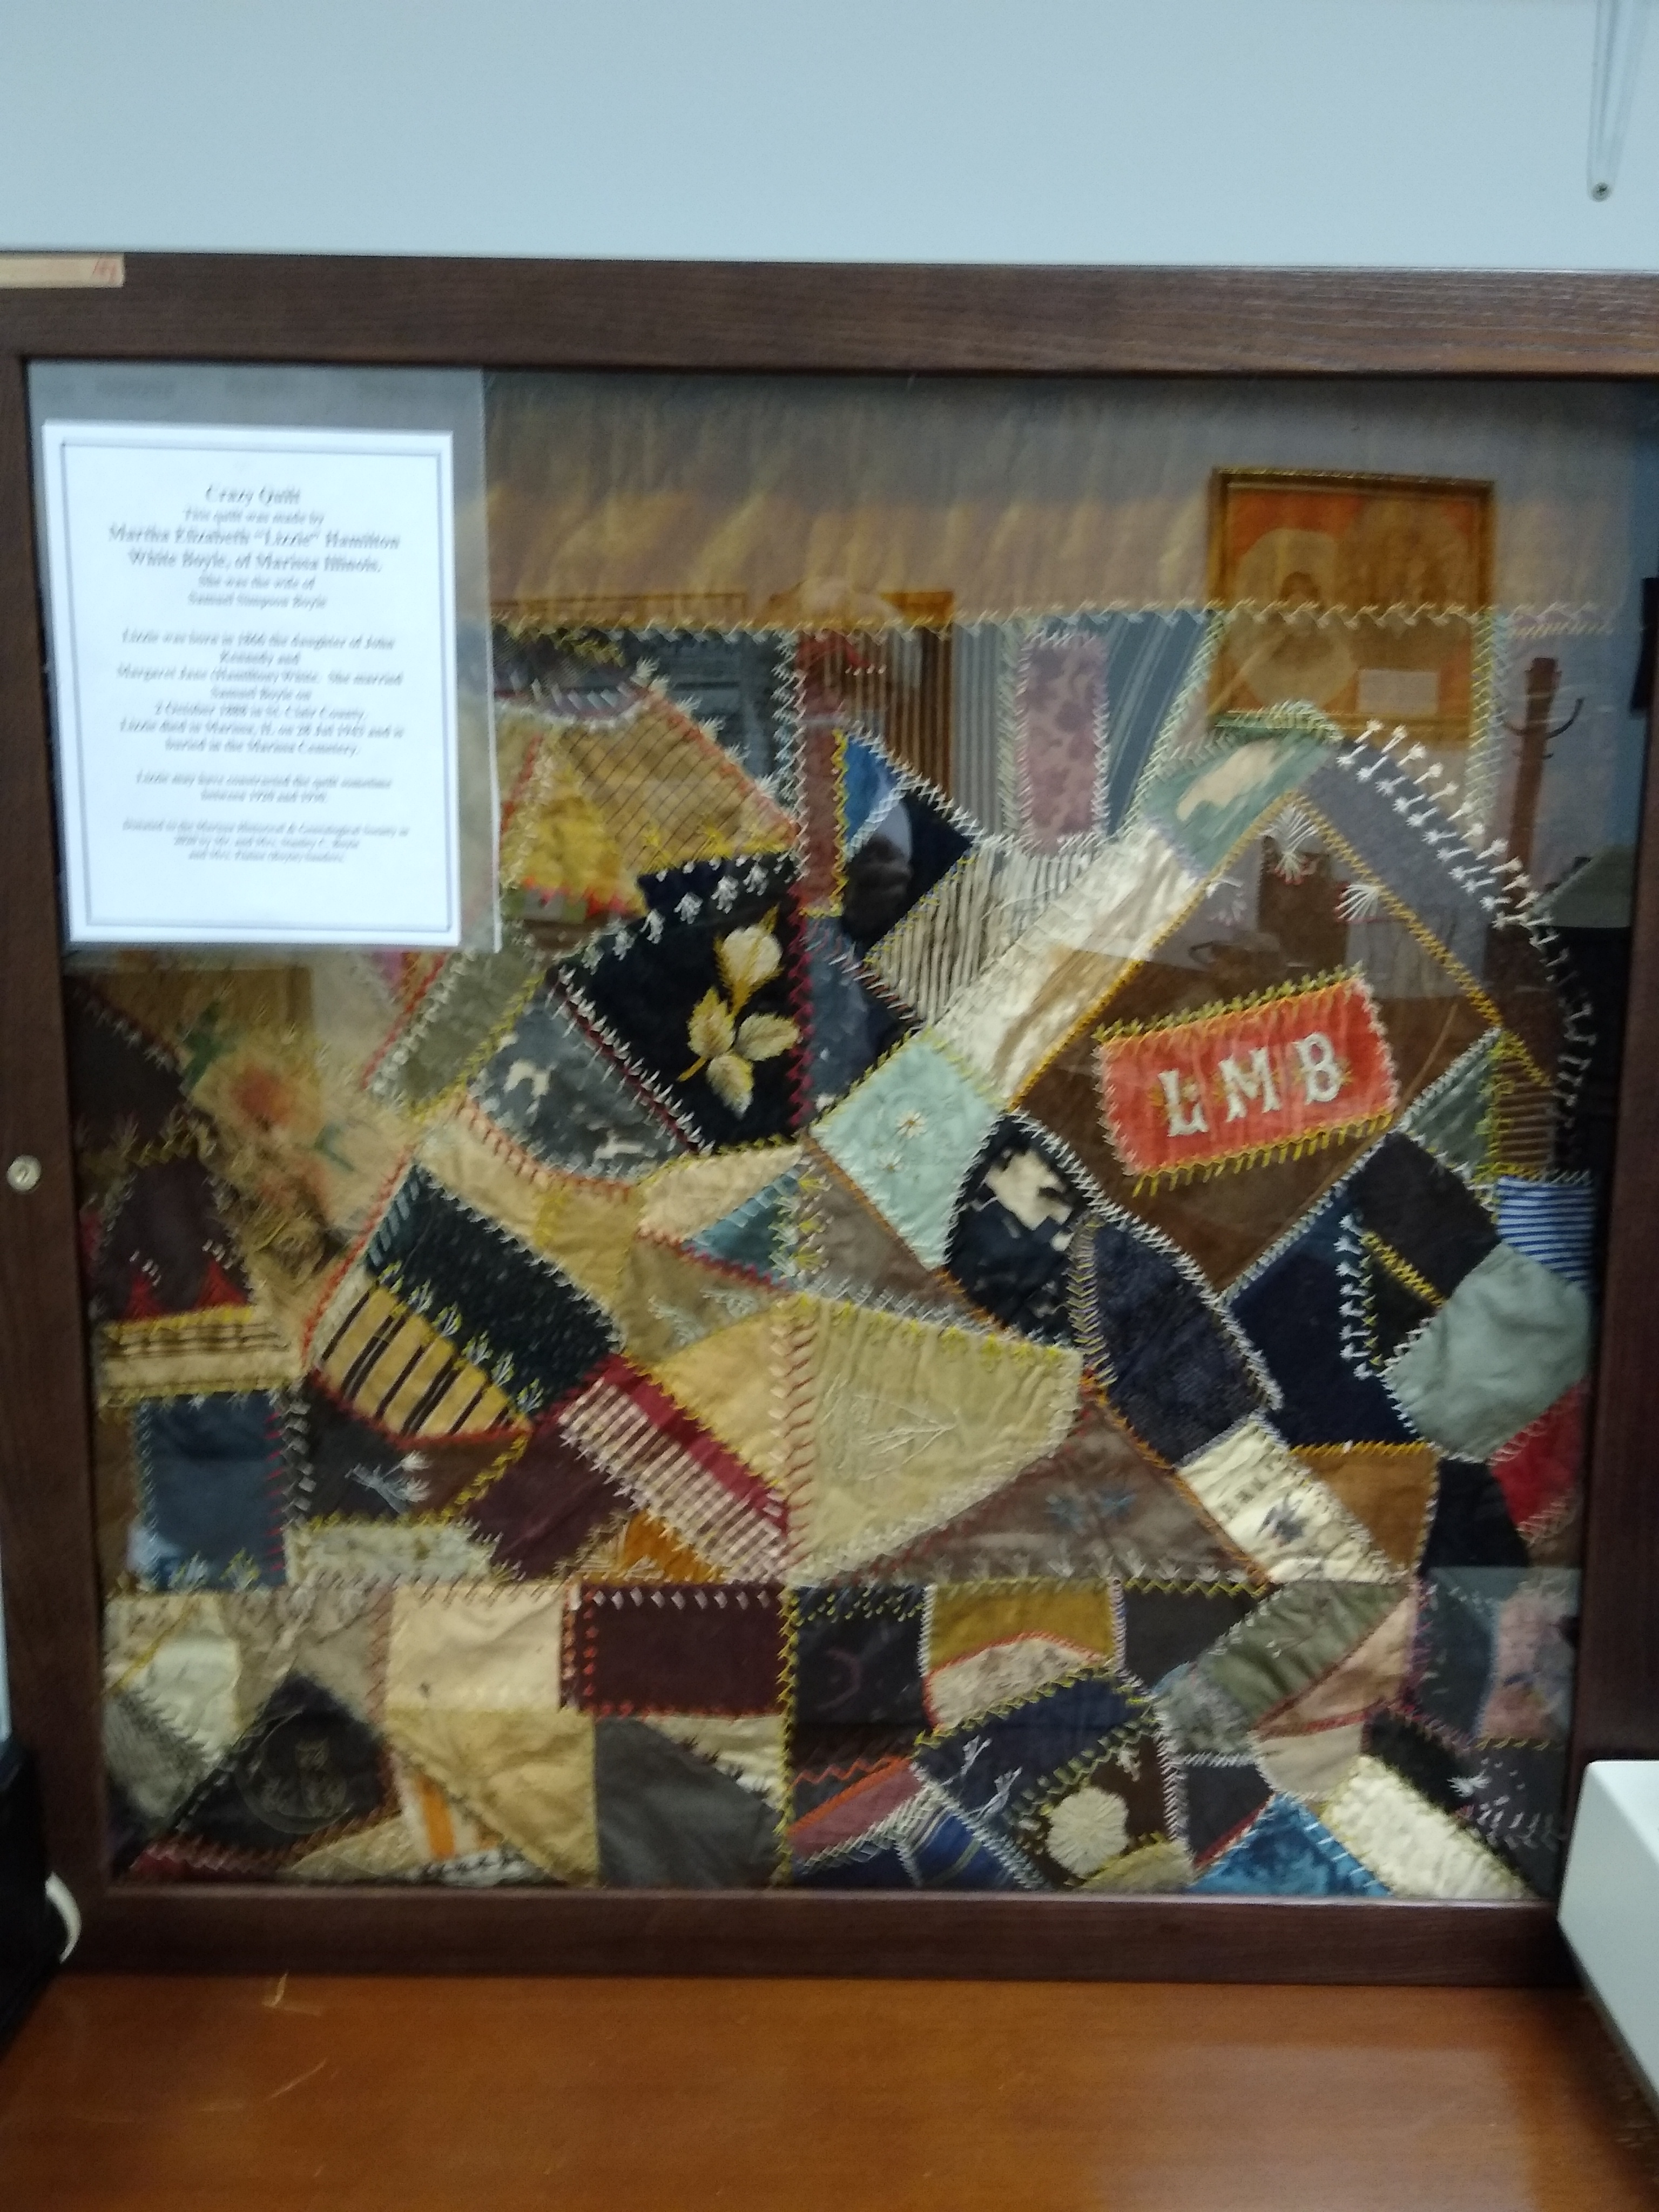 Quilt made by Lizzie Boyle circa 1920's 1930's